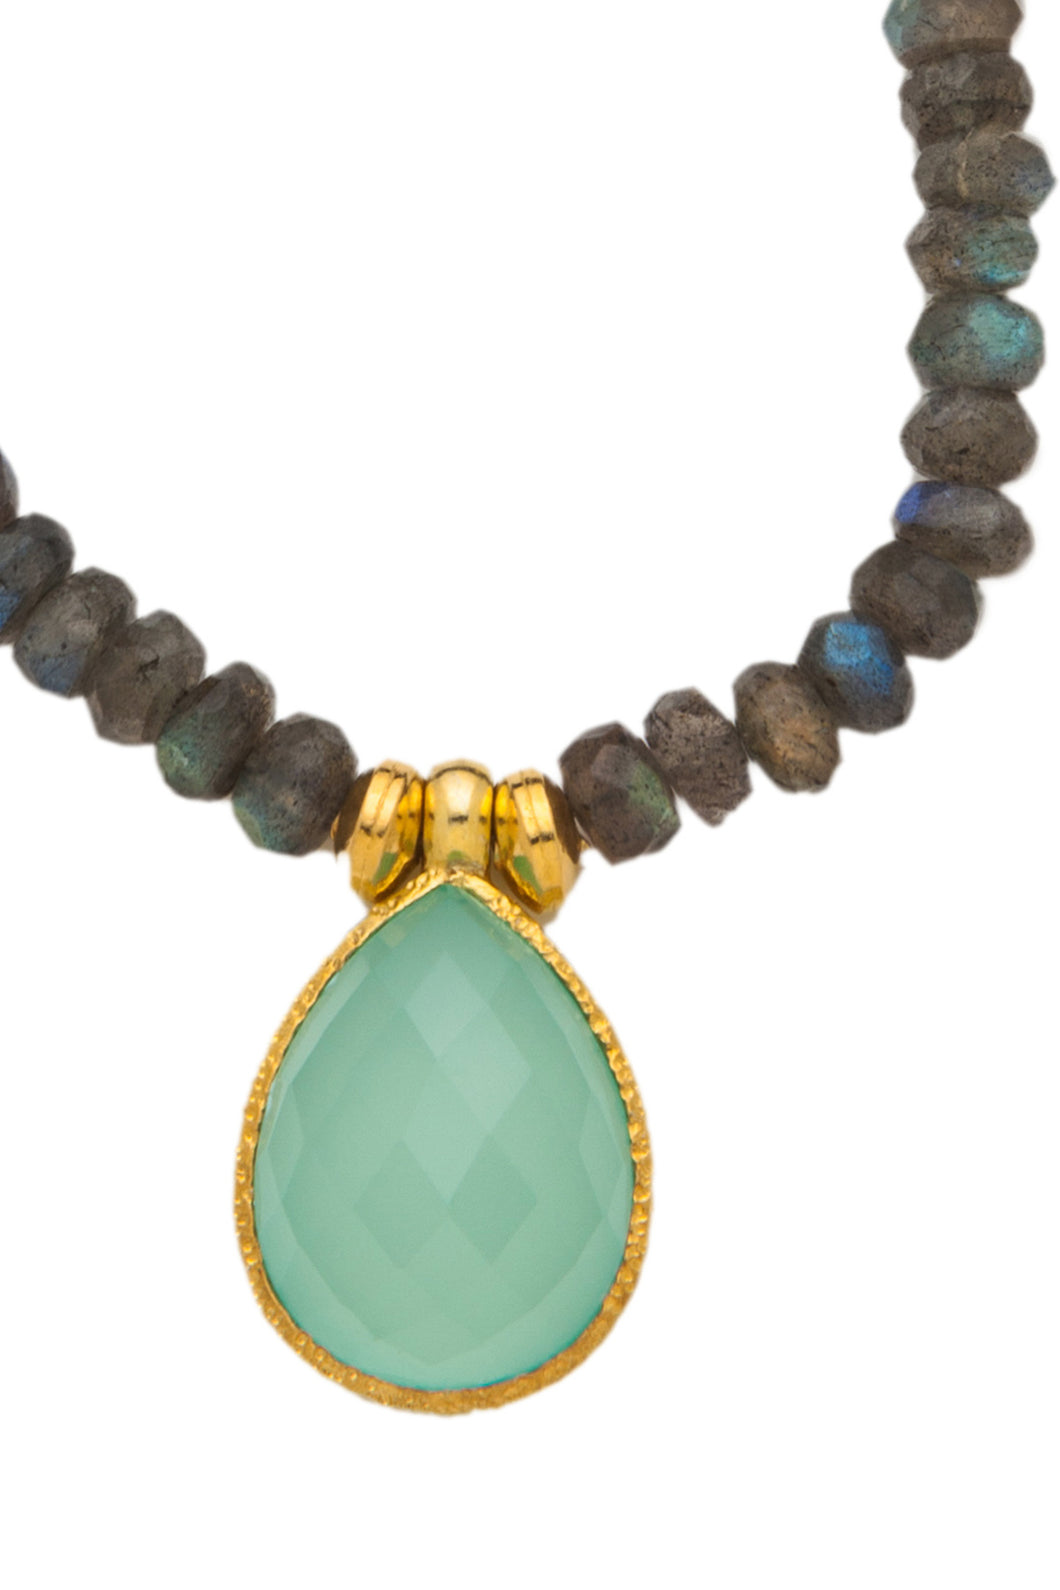 Labradorite Necklace with Chalcedony Pendant in 24kt gold vermeil NF002-LC